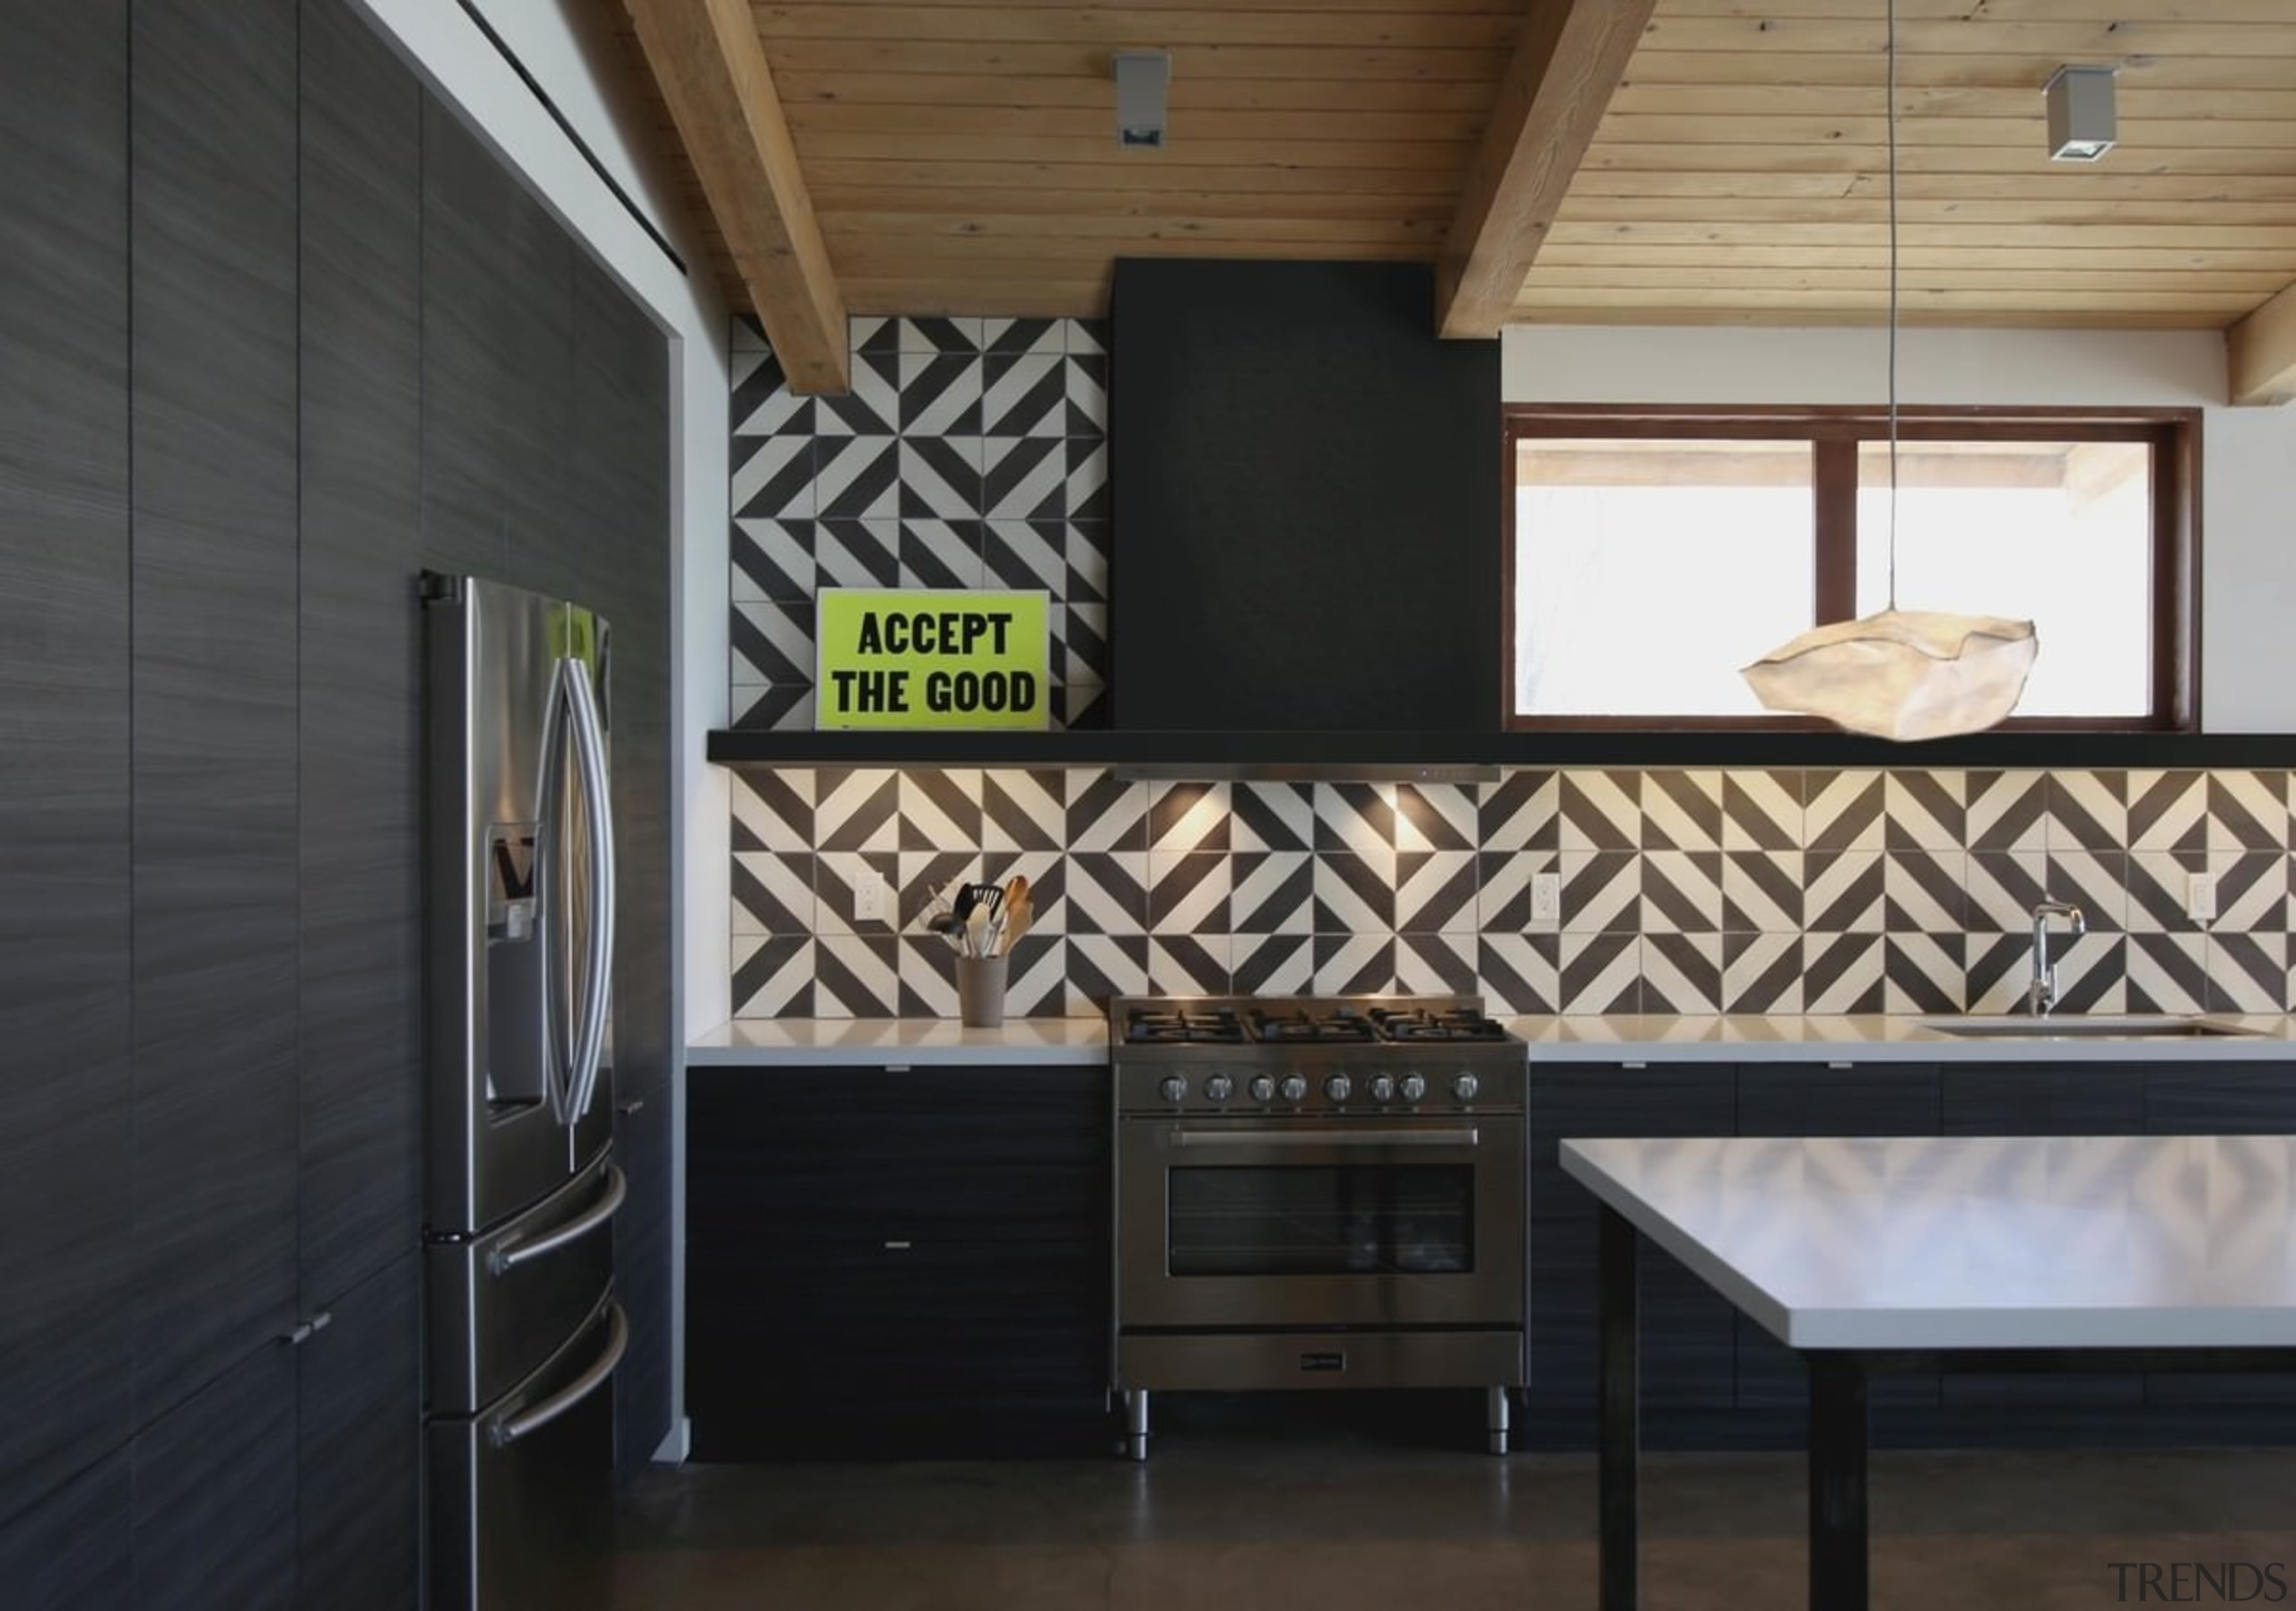 A stand-out splash back helps to balance the architecture, floor, home, interior design, real estate, wall, black